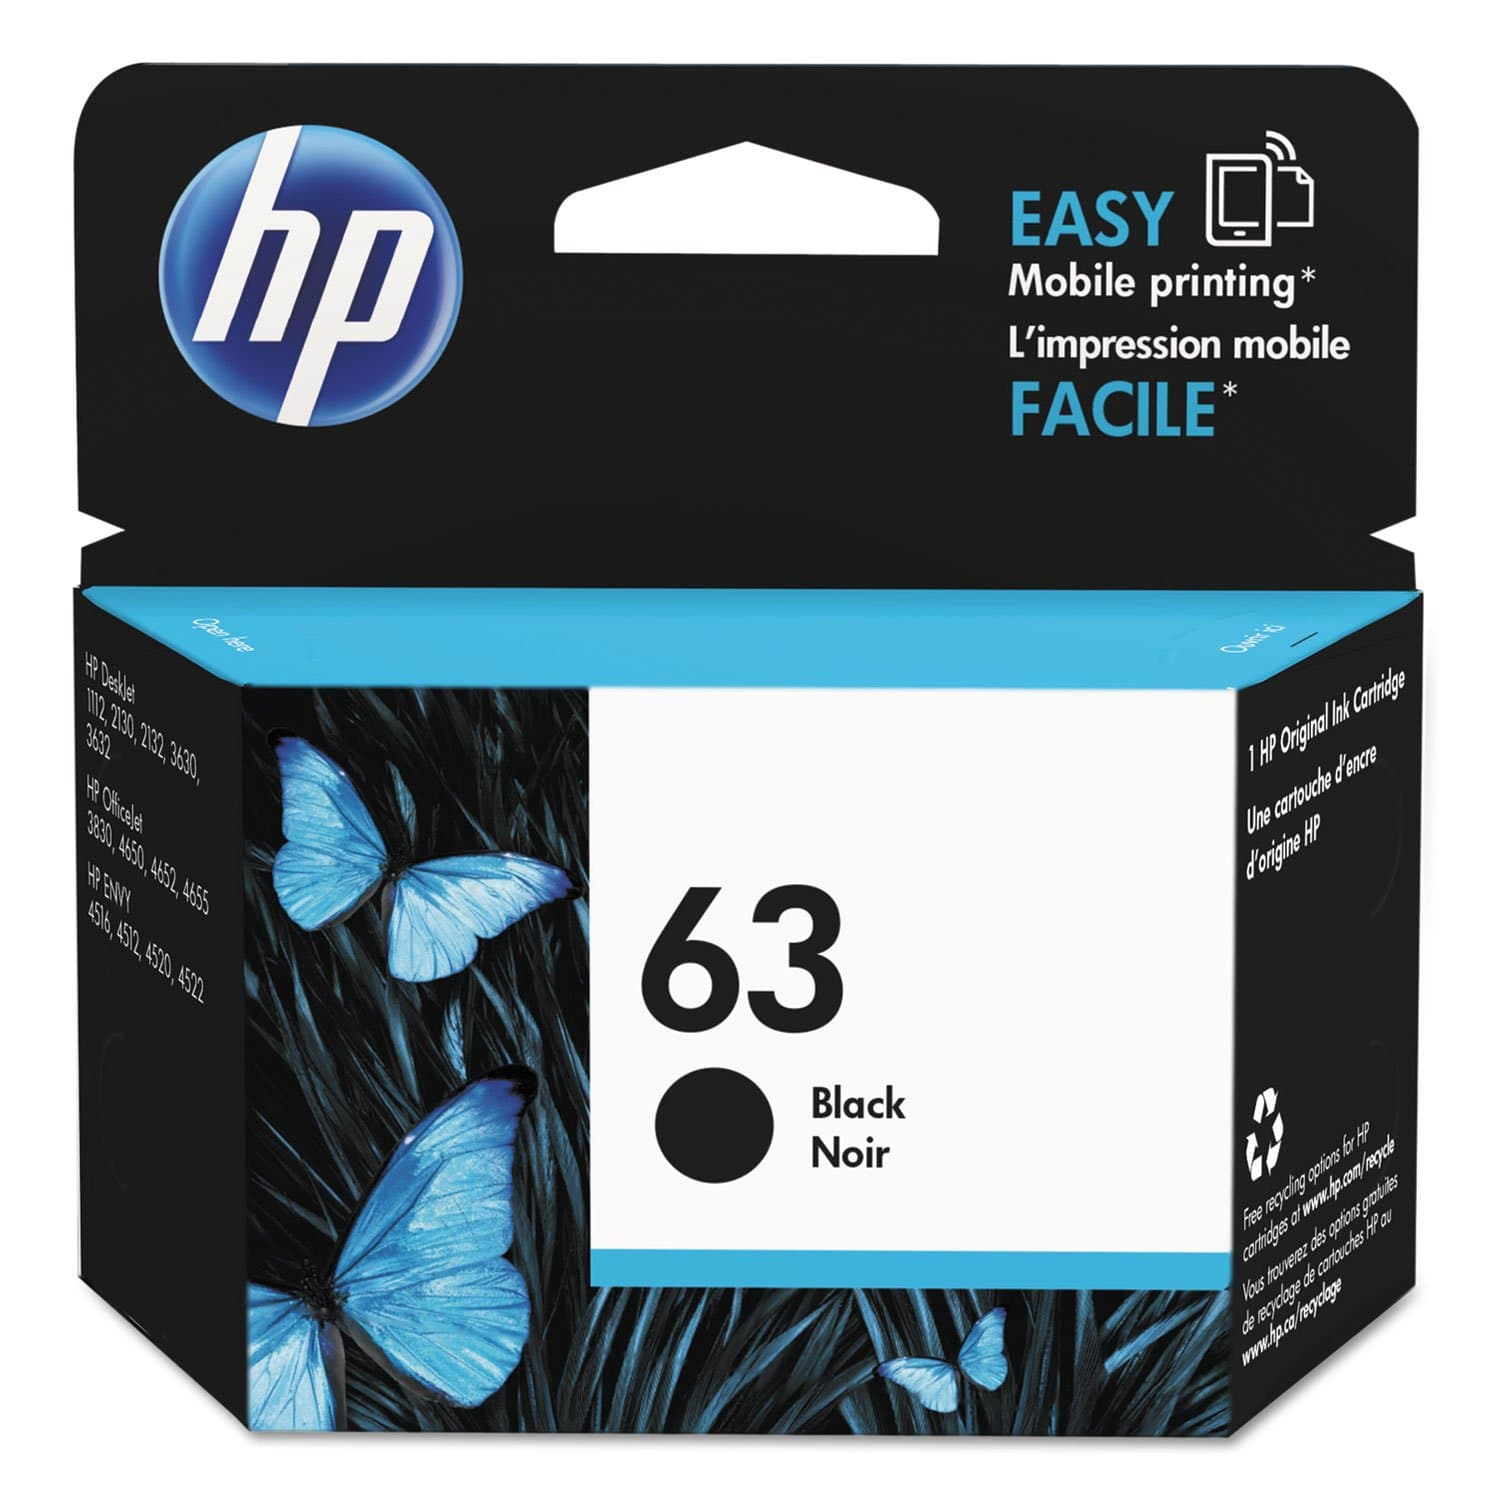 HP 63 Black Original Ink Cartridge (F6U62AN) - FLJ CORPORATIONS